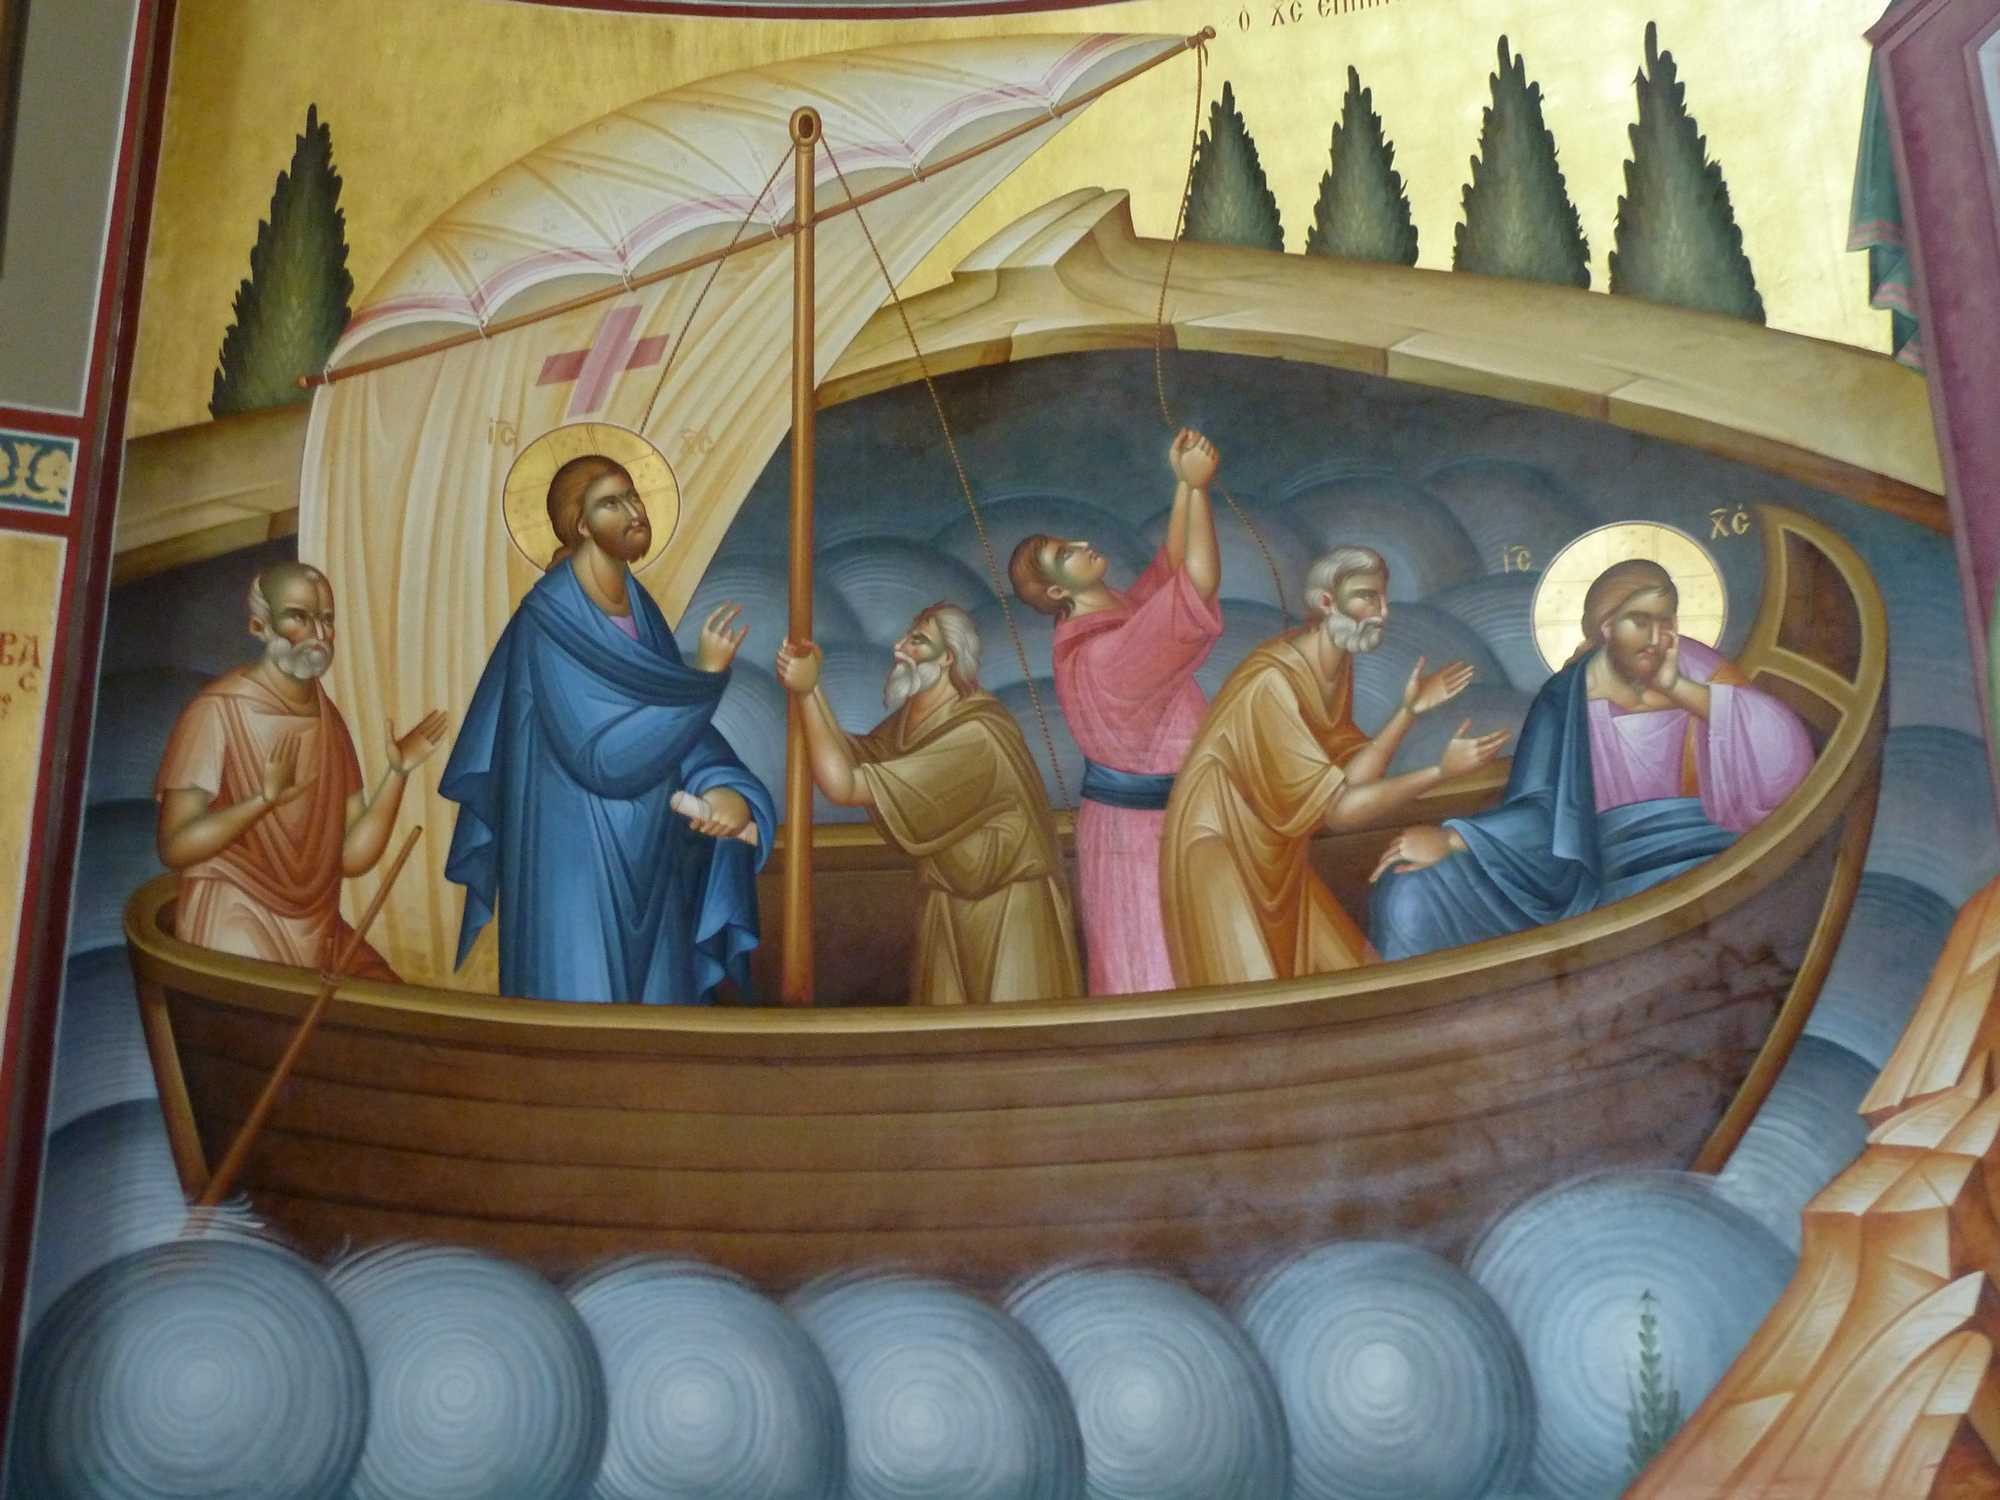 Jesus in boat with disciples  dans immagini sacre 2013-04-19_00119